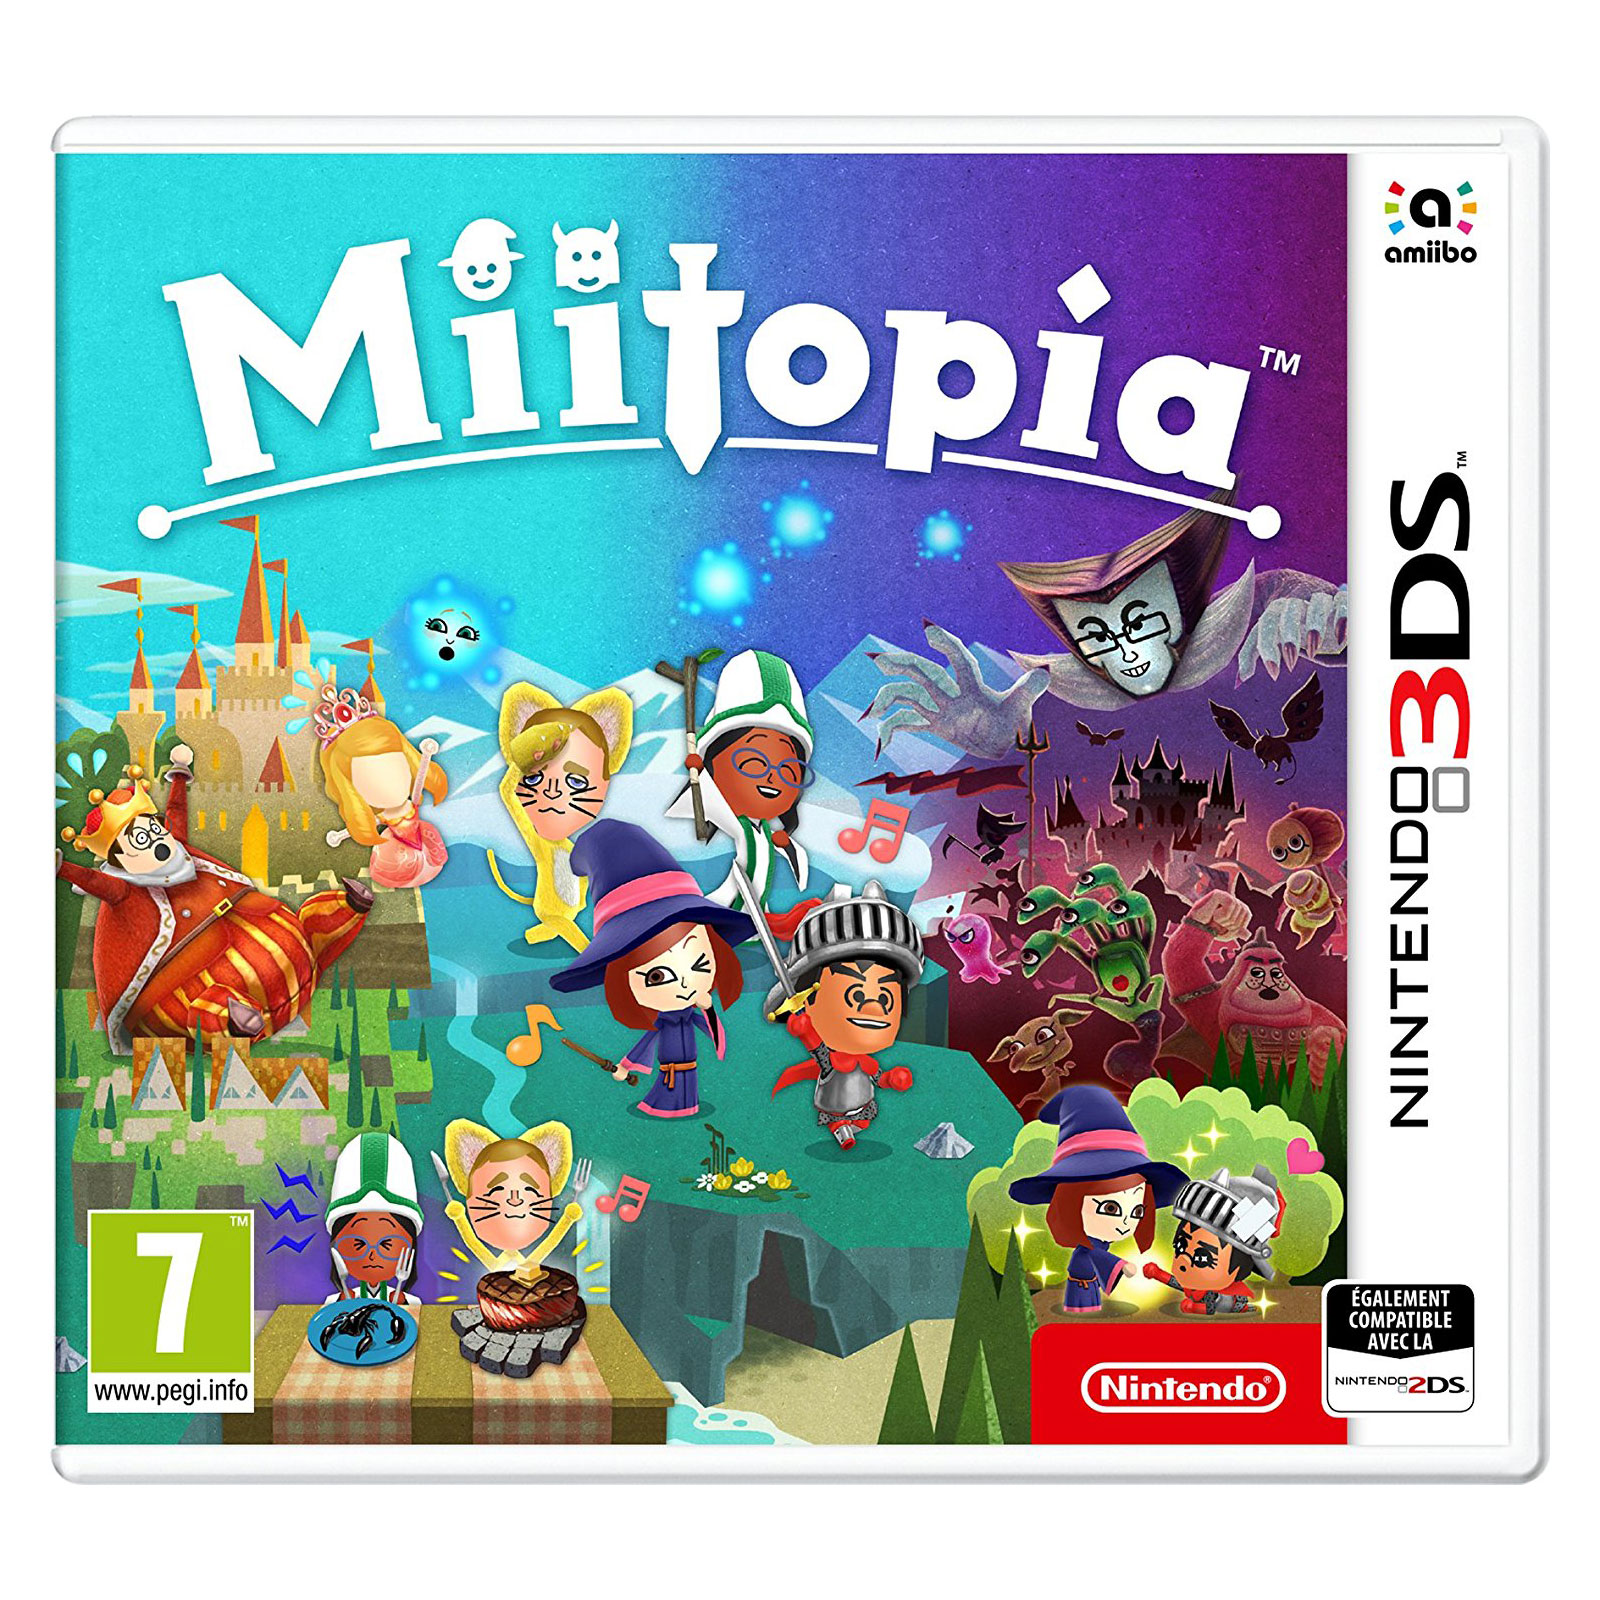 miitopia nintendo 3ds 2ds jeux nintendo 3ds nintendo sur. Black Bedroom Furniture Sets. Home Design Ideas